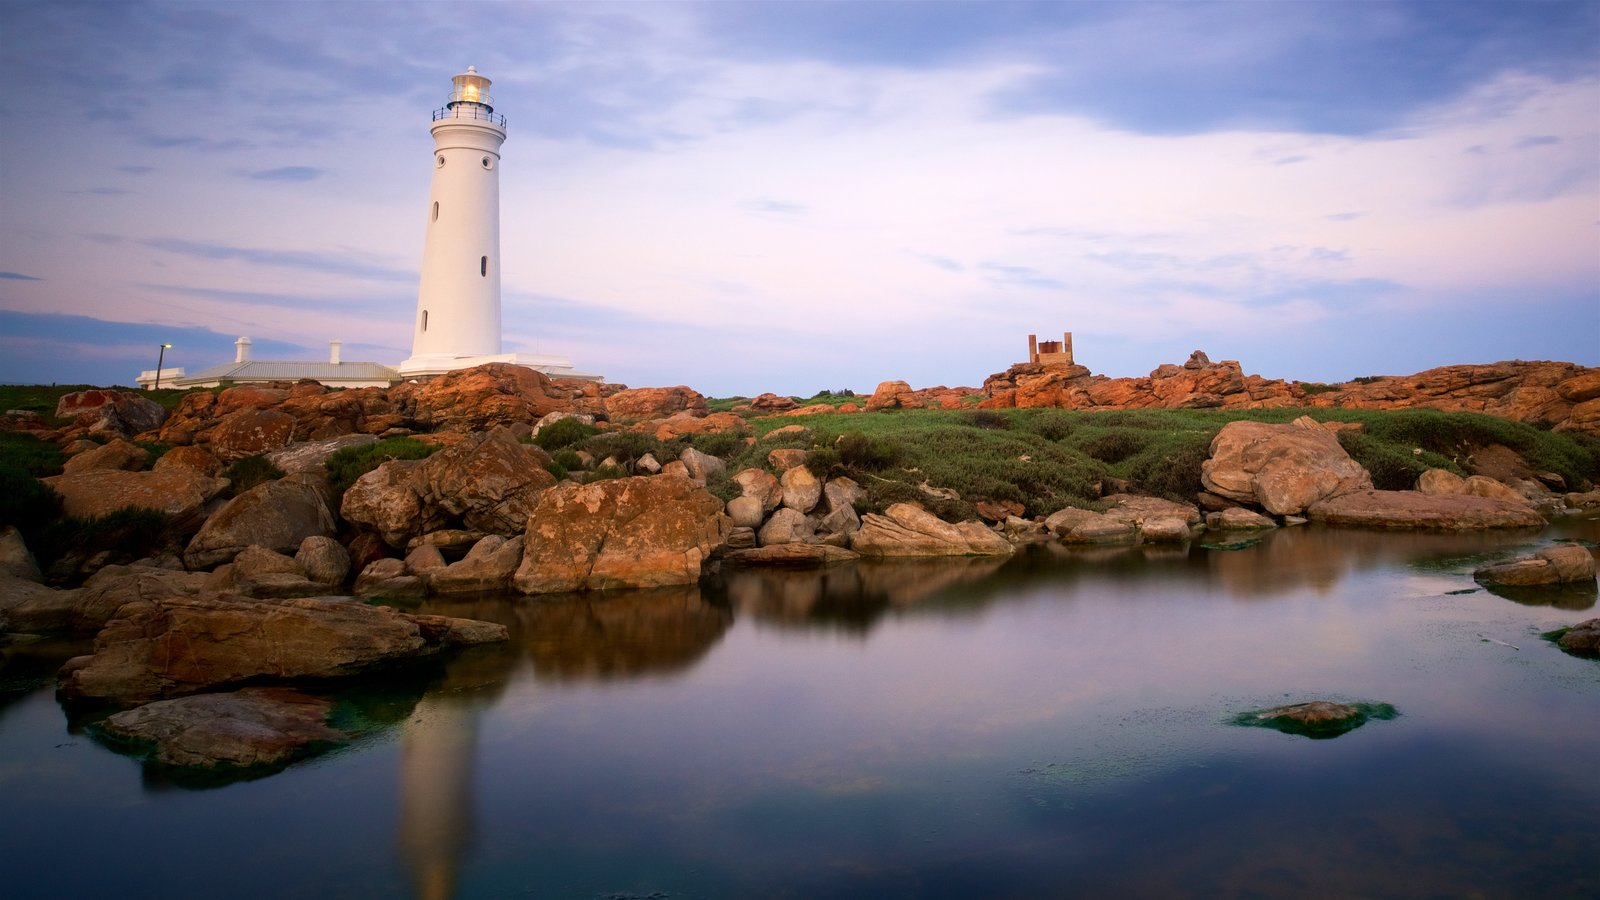 Cape Saint Francis